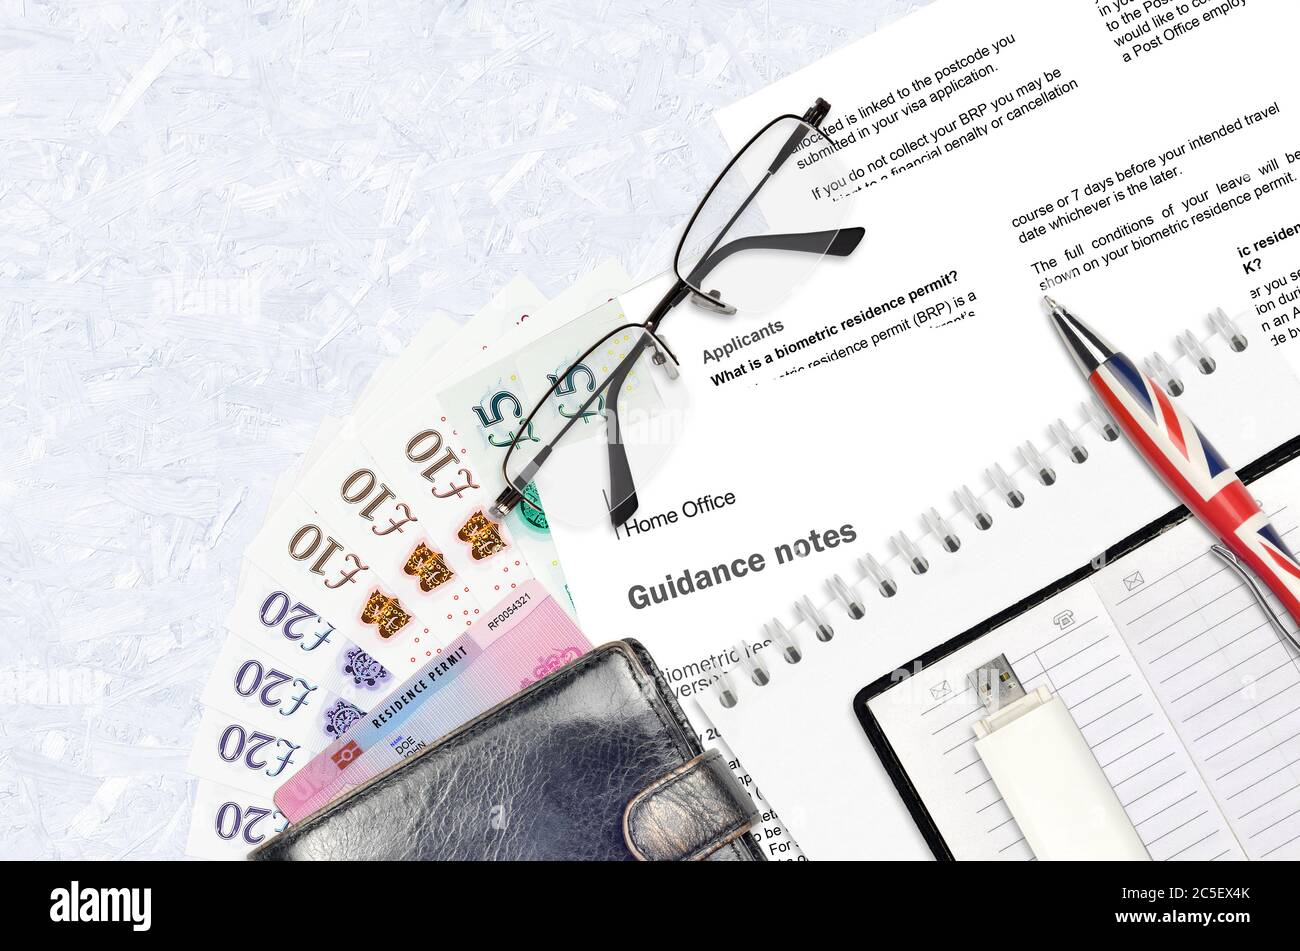 English Form Brp With Guidance Notes To Applying Biometric Residence Permit Card From Uk Visas And Immigration Services Lies On Table With Office Item Stock Photo Alamy